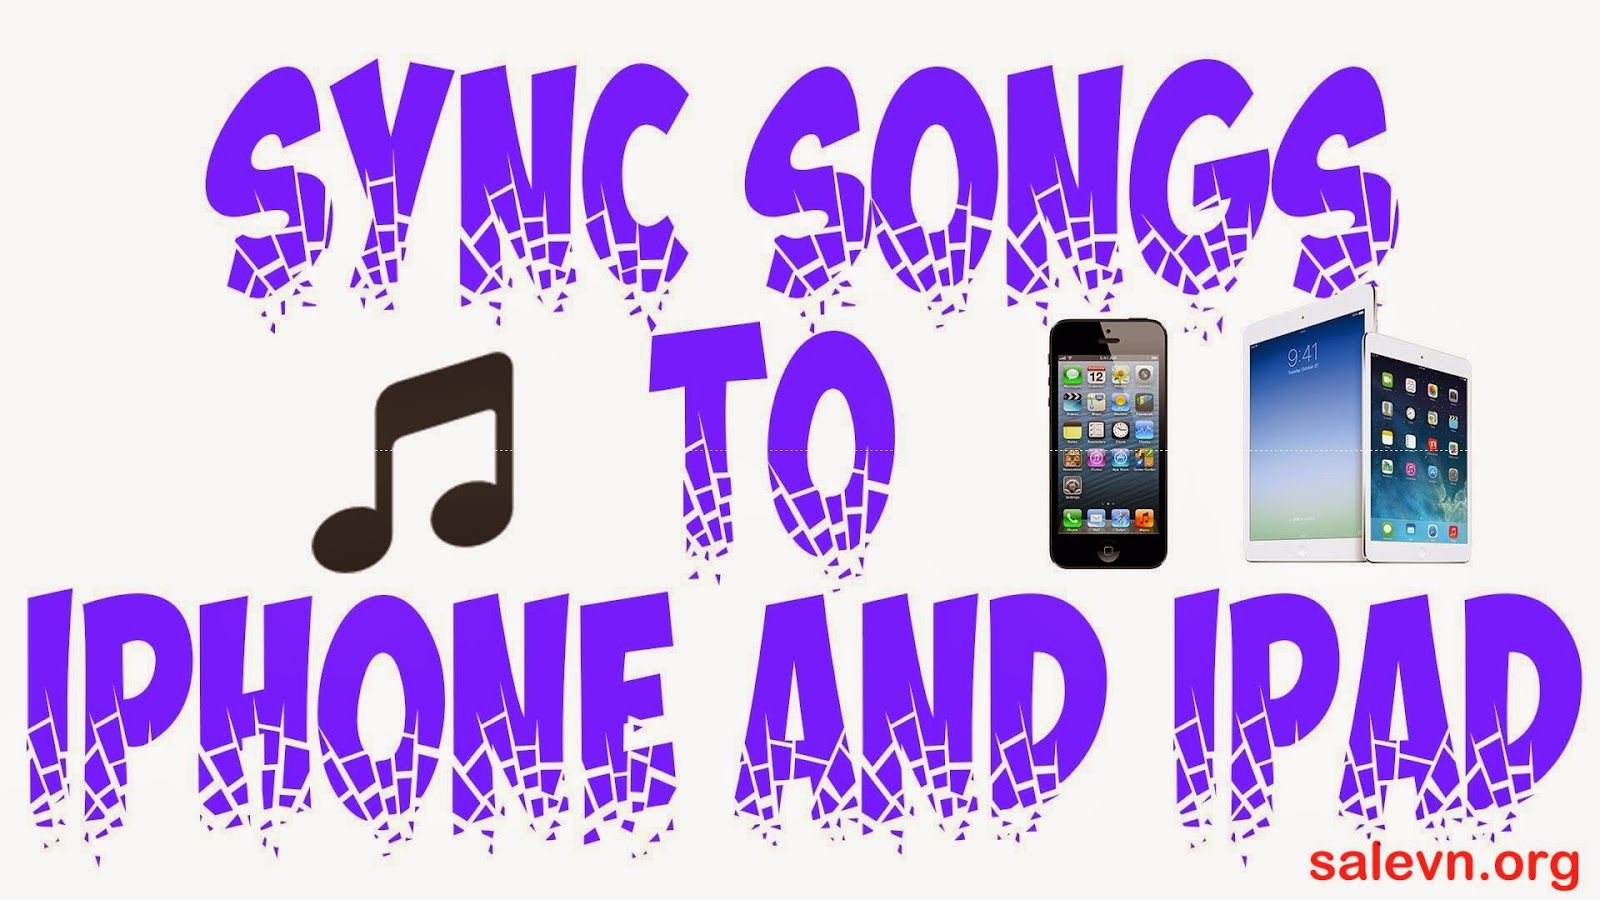 Application Control iTunes 11.4, iOS music ~ Free Initial Knowledge